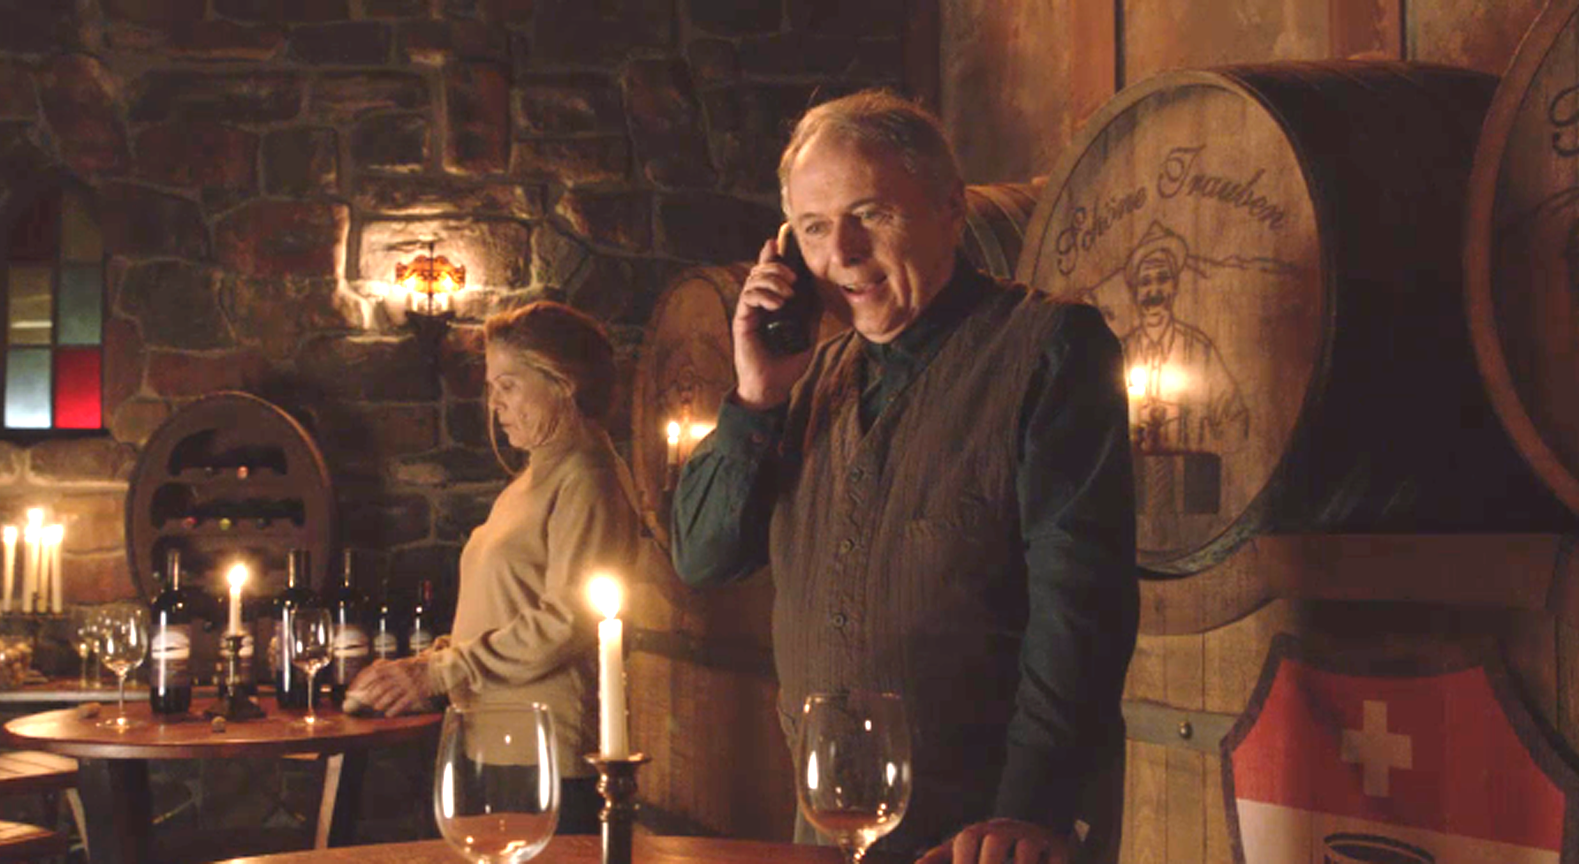 OLD WORLD WINERY - PRODUCTION STILL